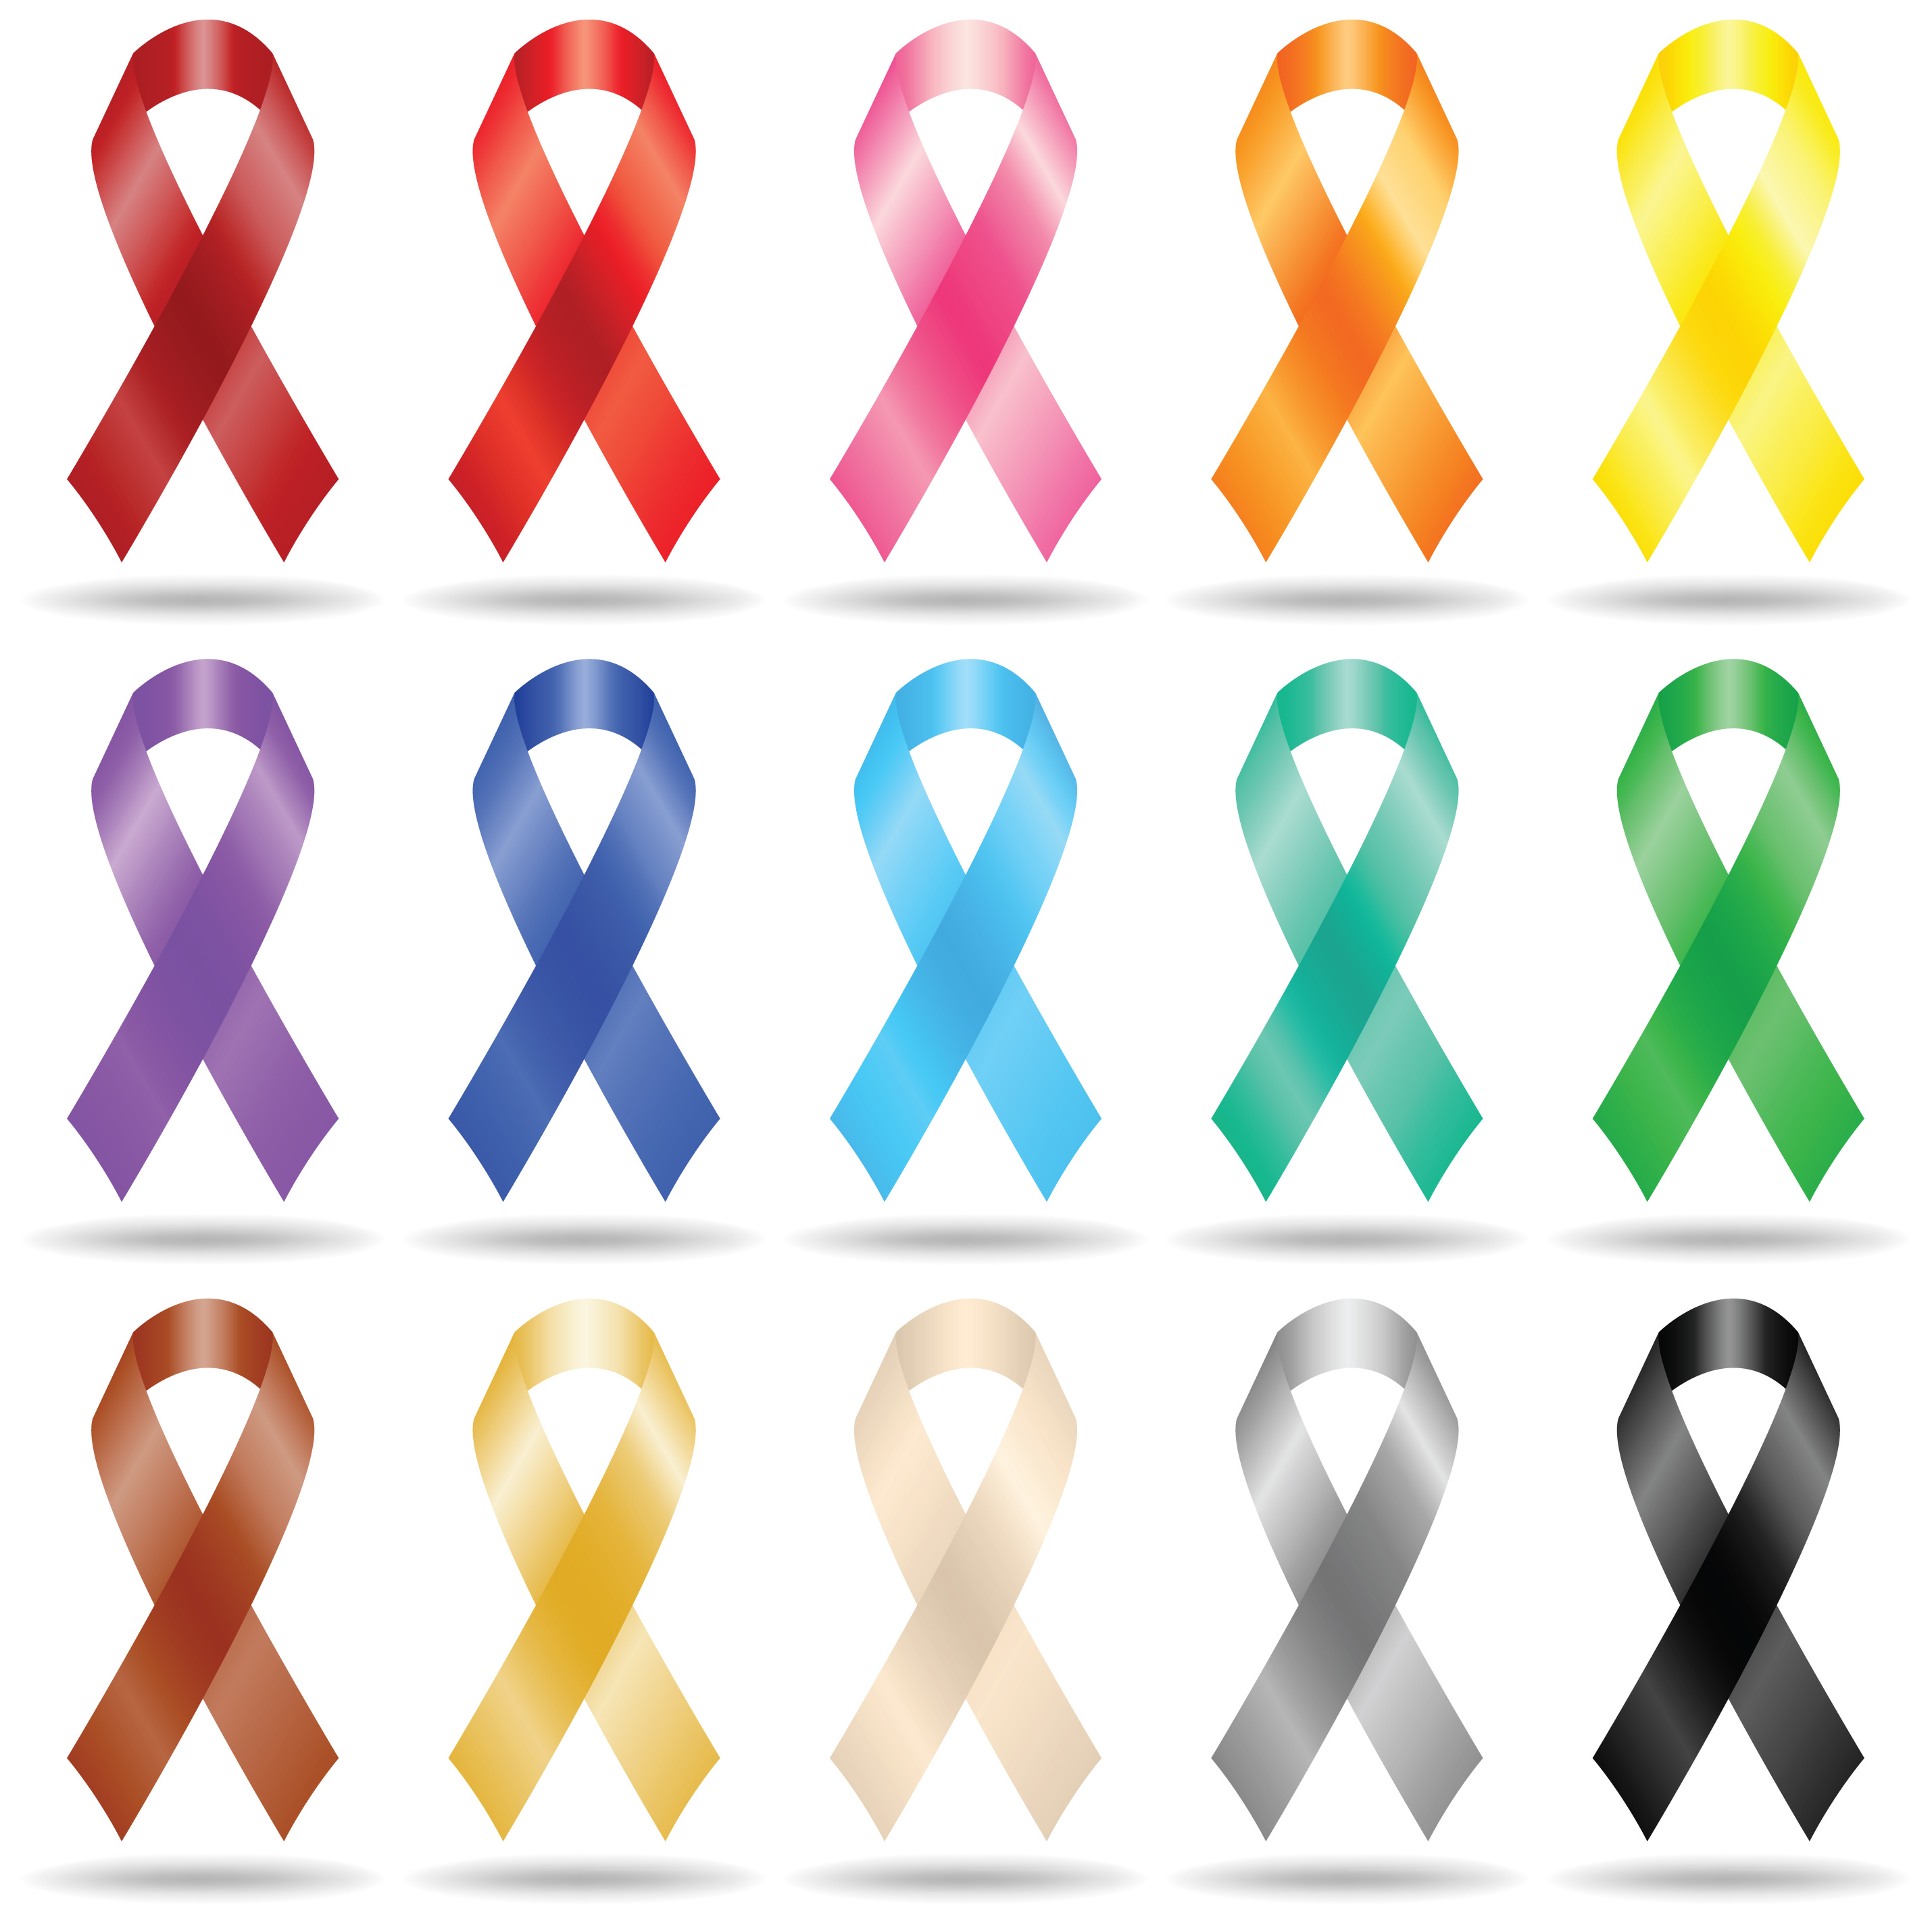 Cancer Ribbon Images - ClipArt Best